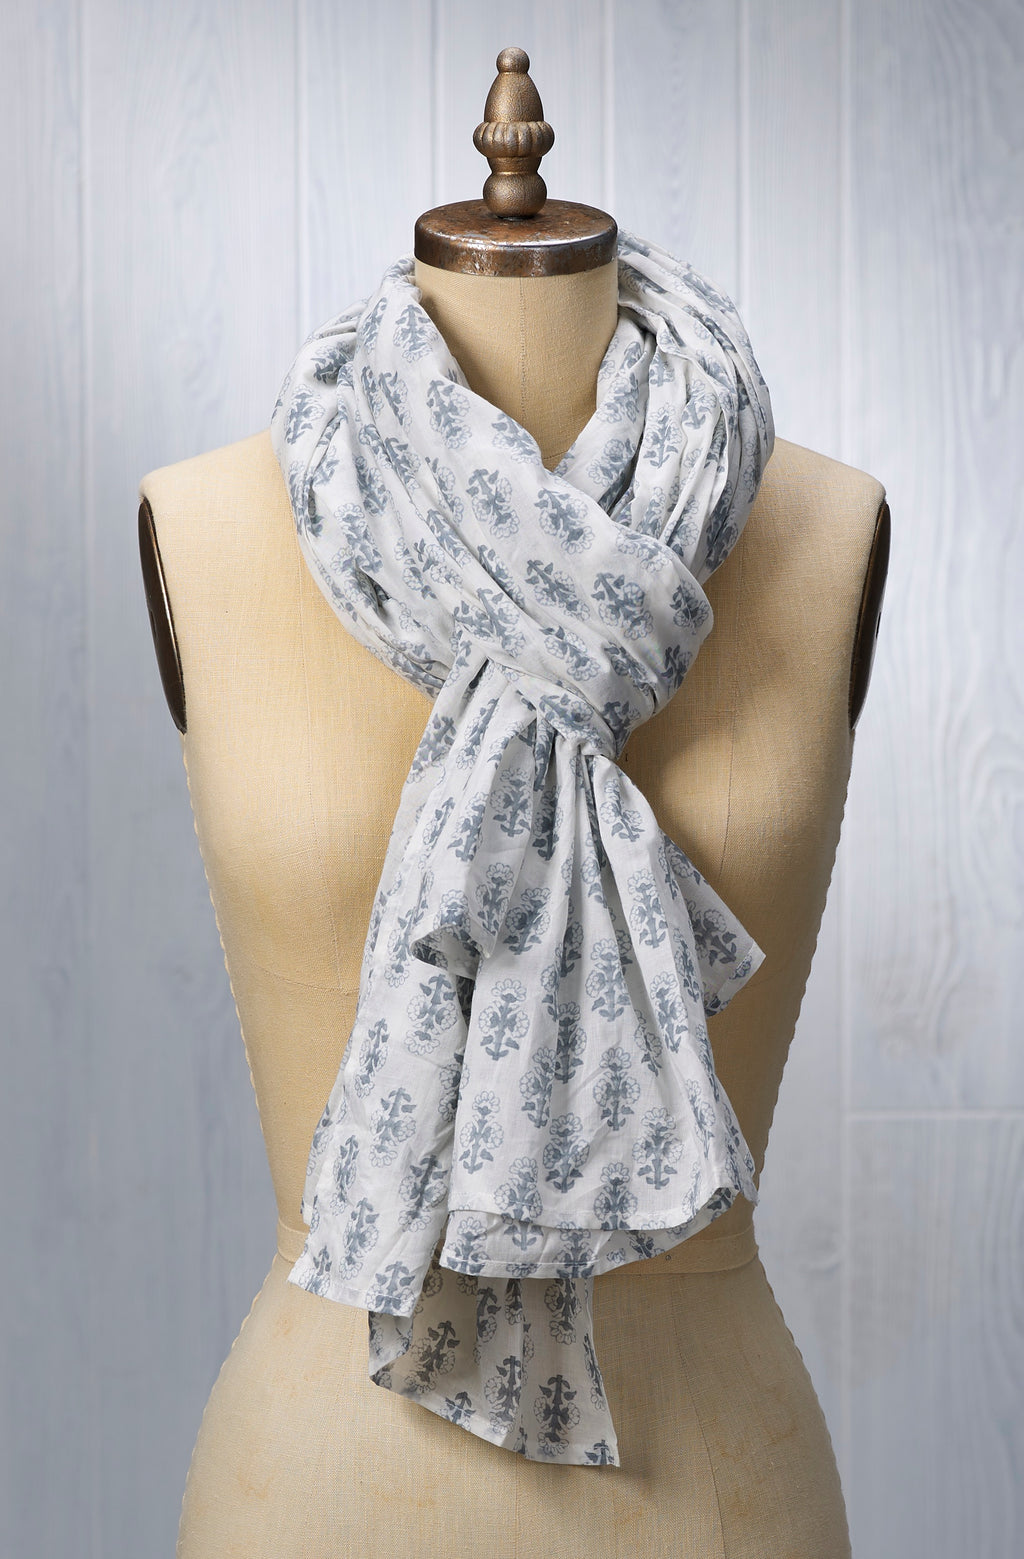 August Table Scarf - Talelayo print in Tern Gray